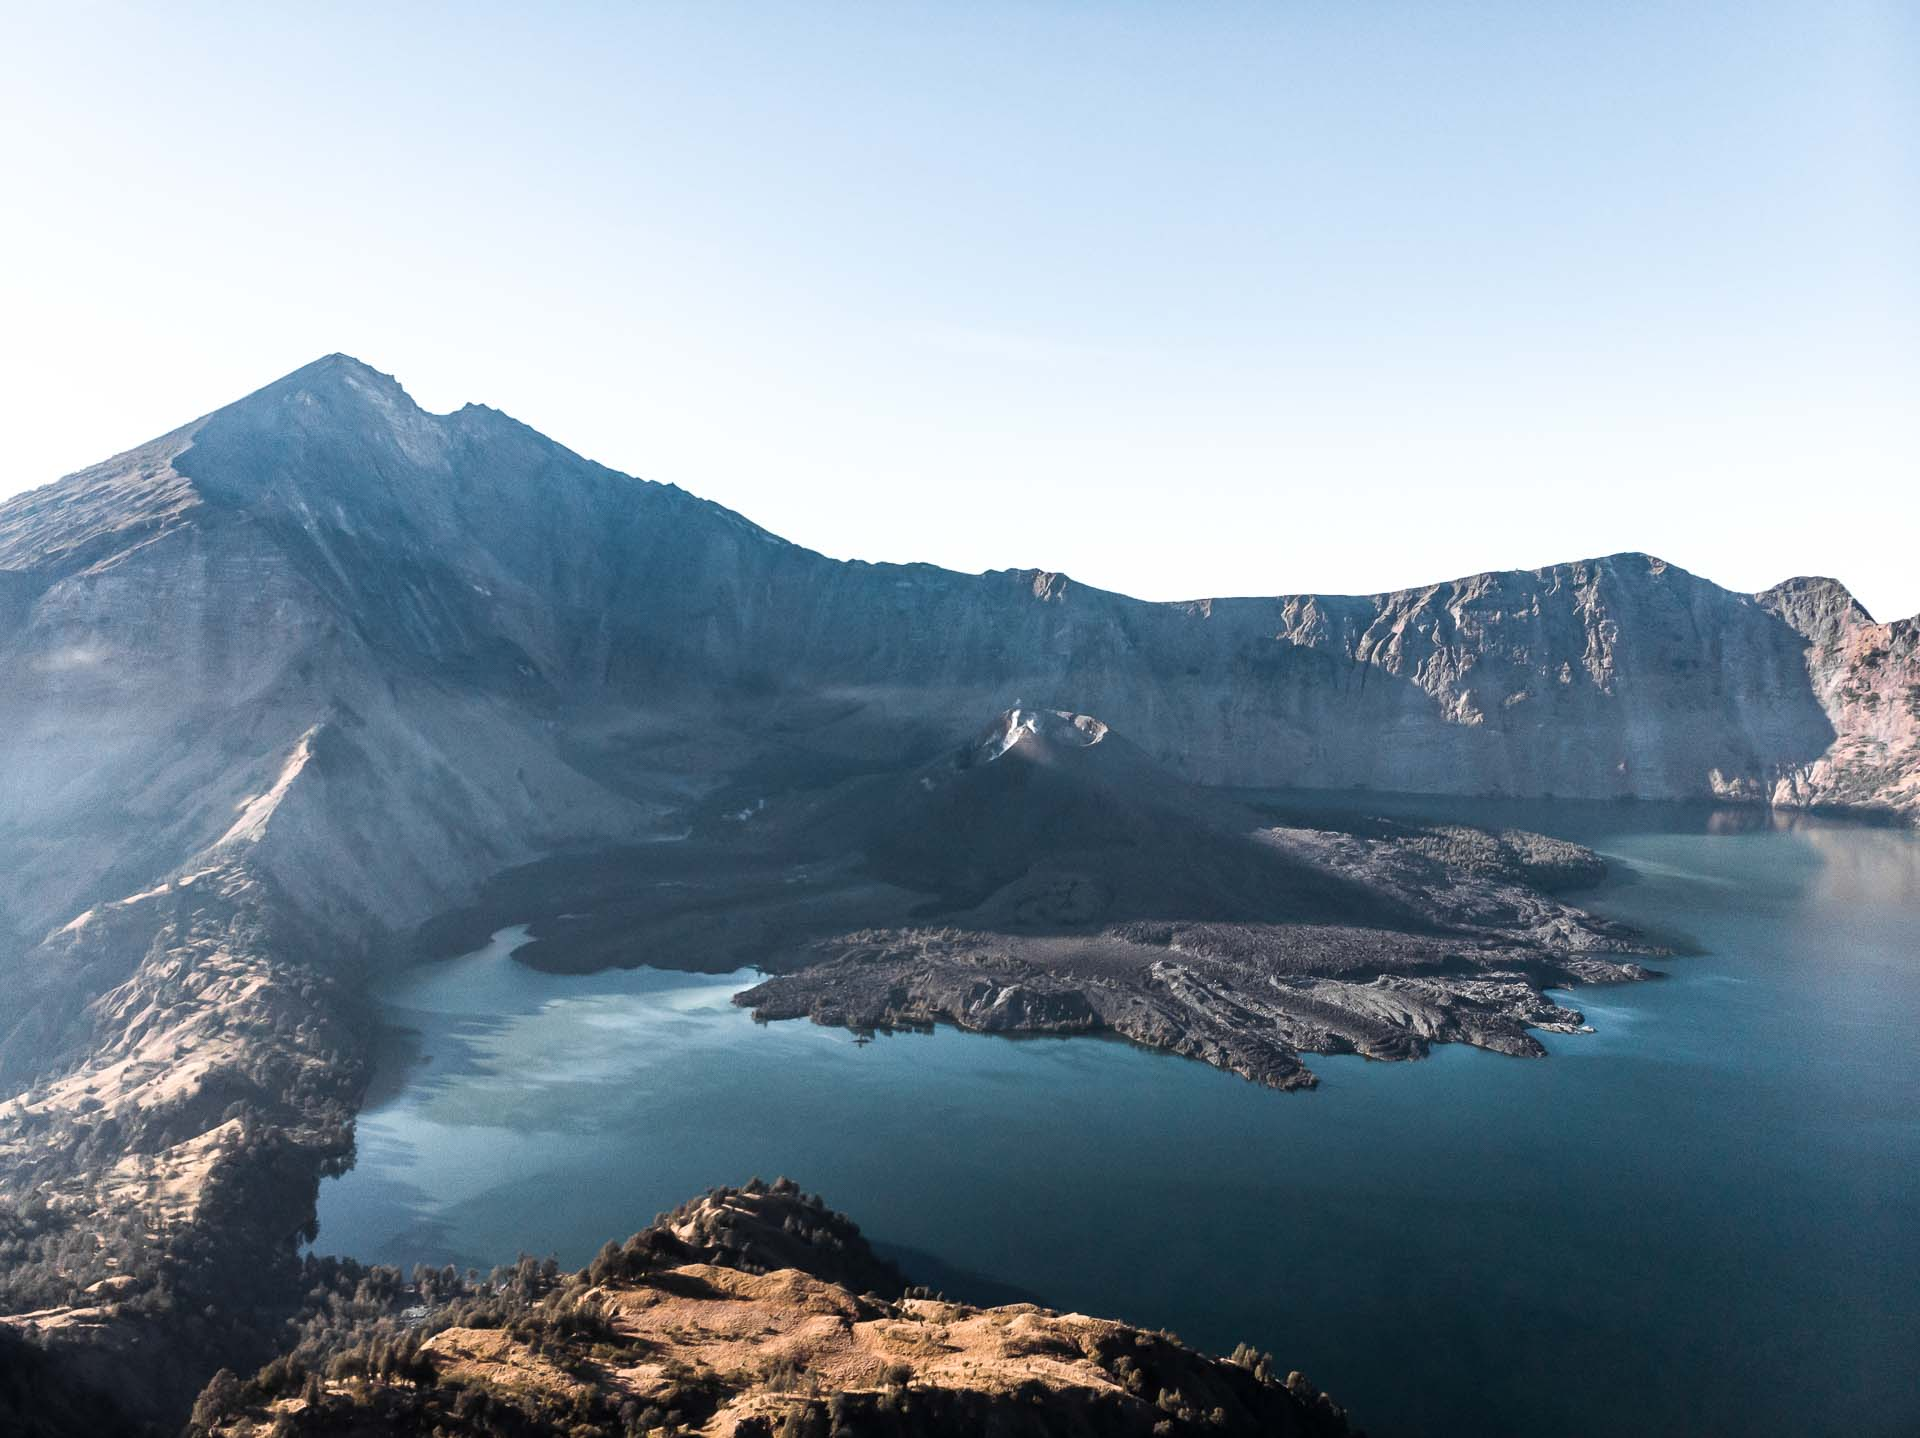 View over lake and caldera Mount Rinjani